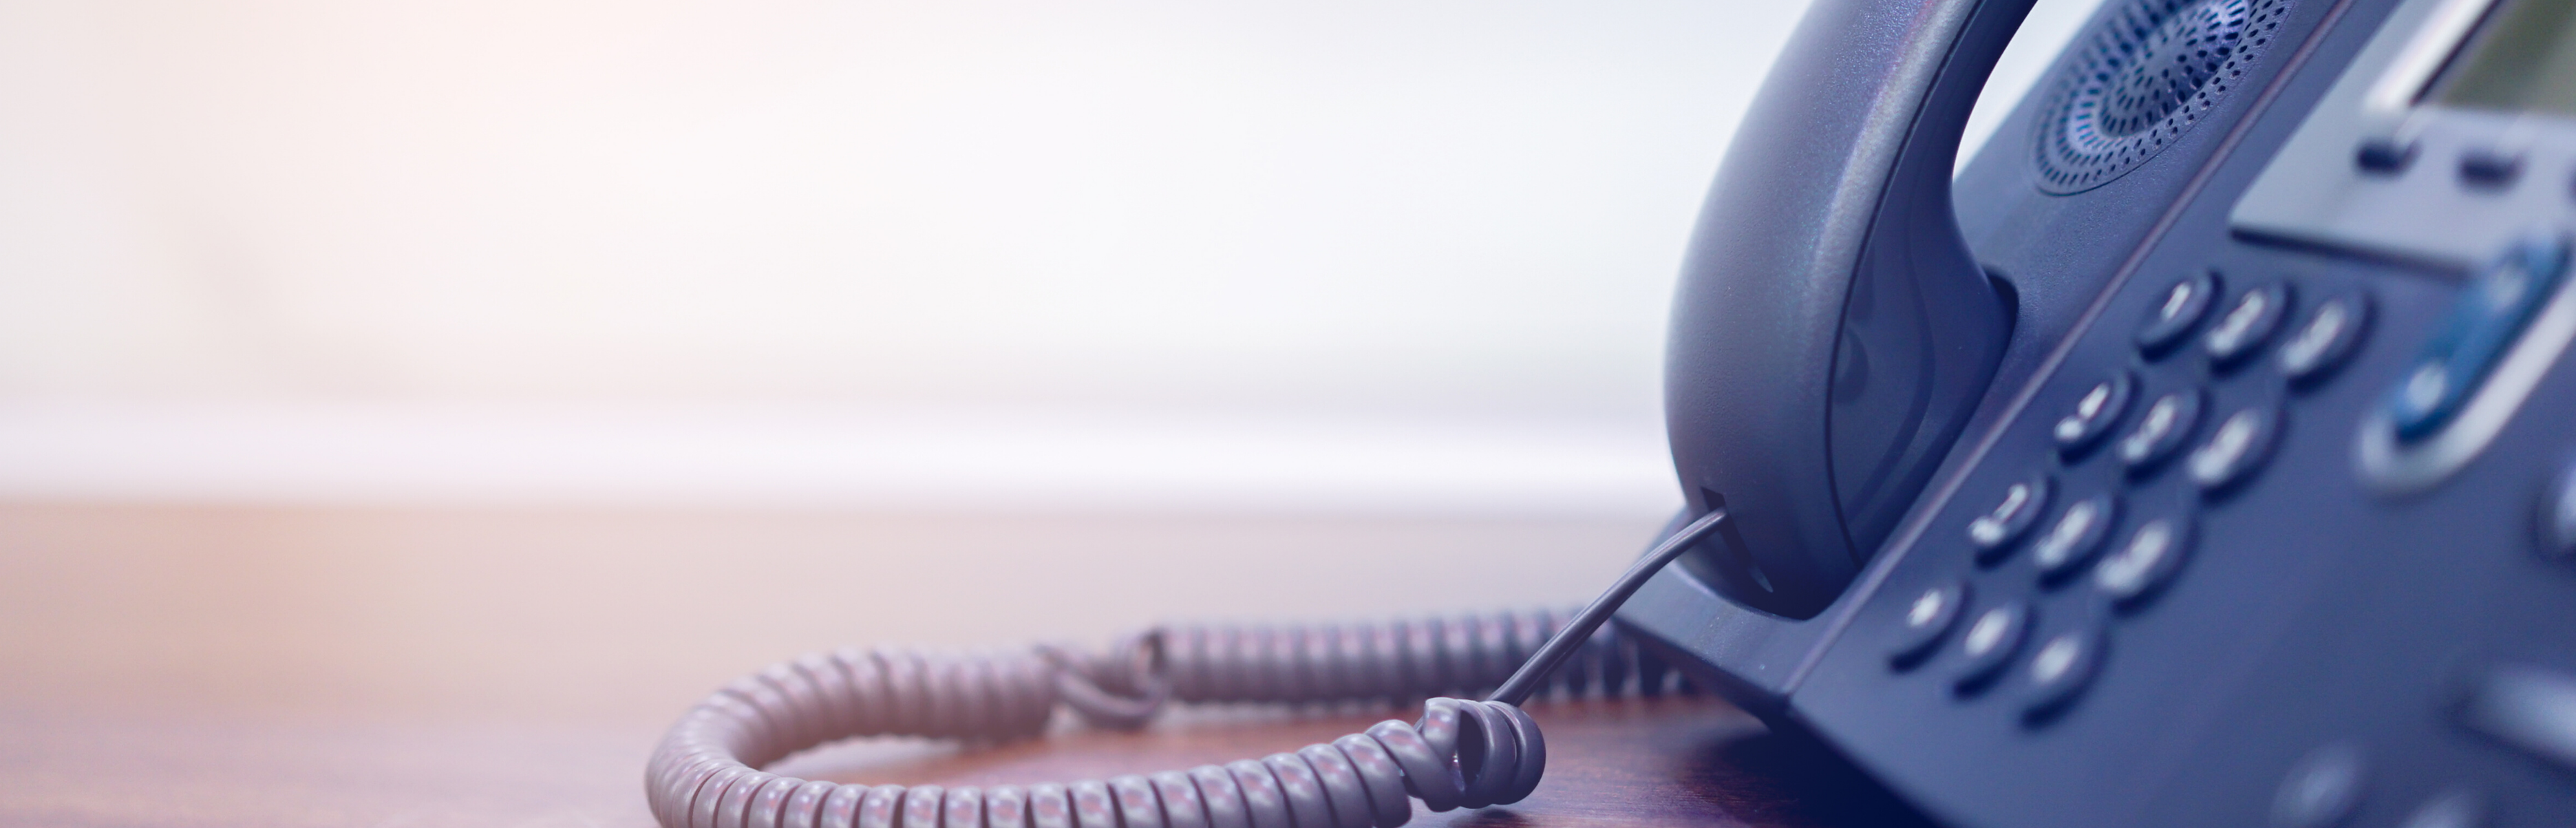 Landline phone in an office setting - BOI Payment Acceptance (BOIPA)